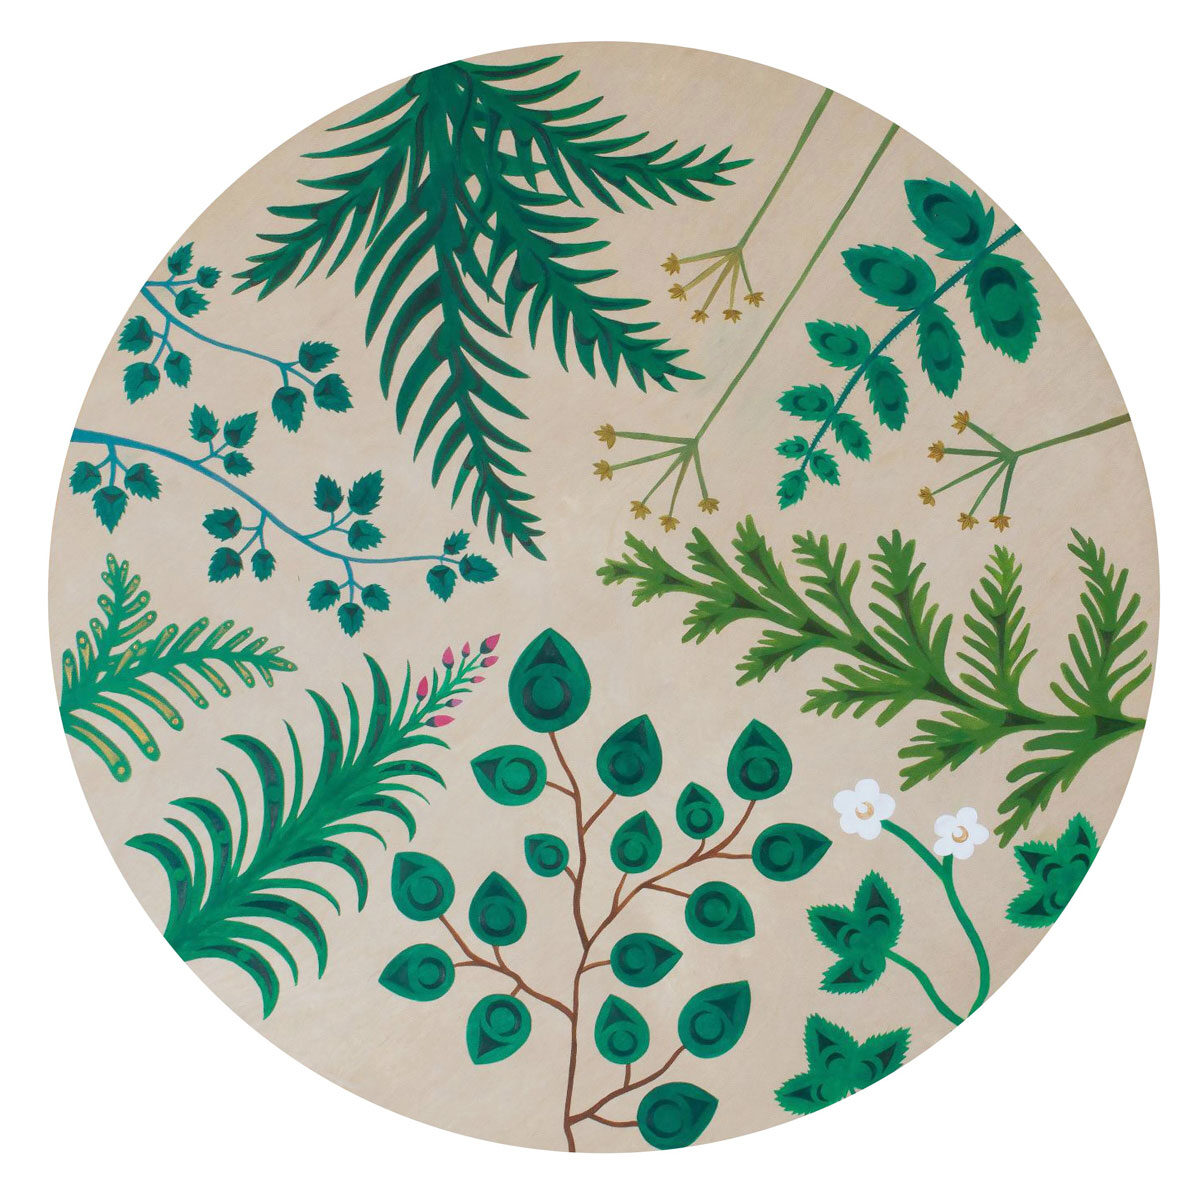 Circular painting, with plants of all varieties arranged to point toward the centre, by Sarah Jim.